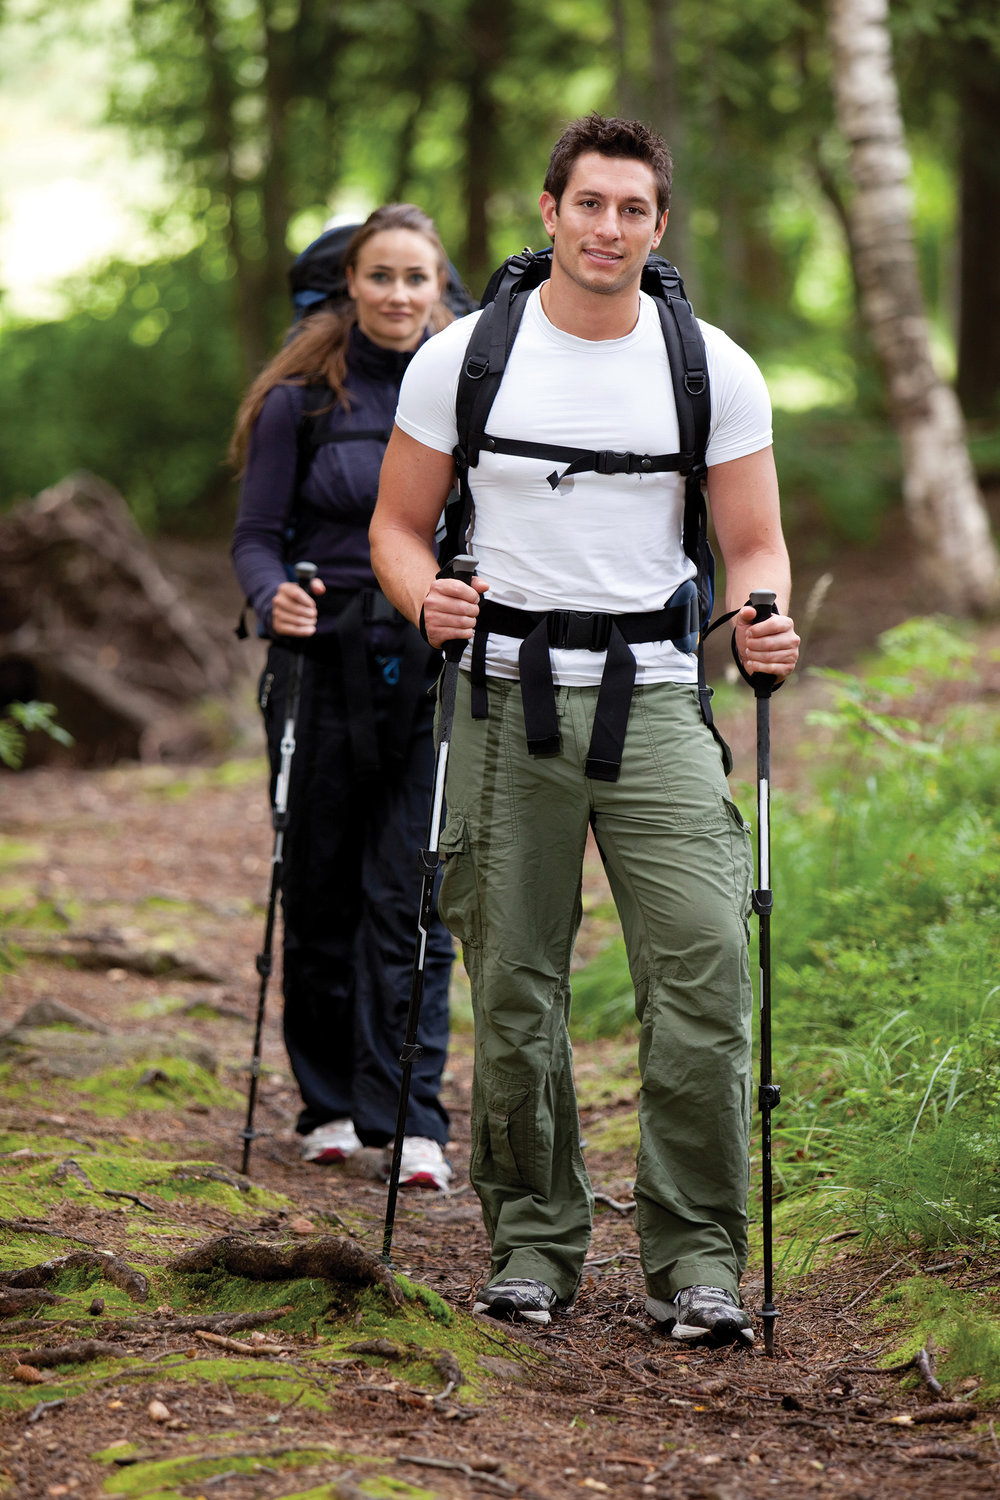 Staying fit and having fun, power-walking has become a favourite sport along the trail. Photo courtesy Eastern Ontario Trails Alliance.